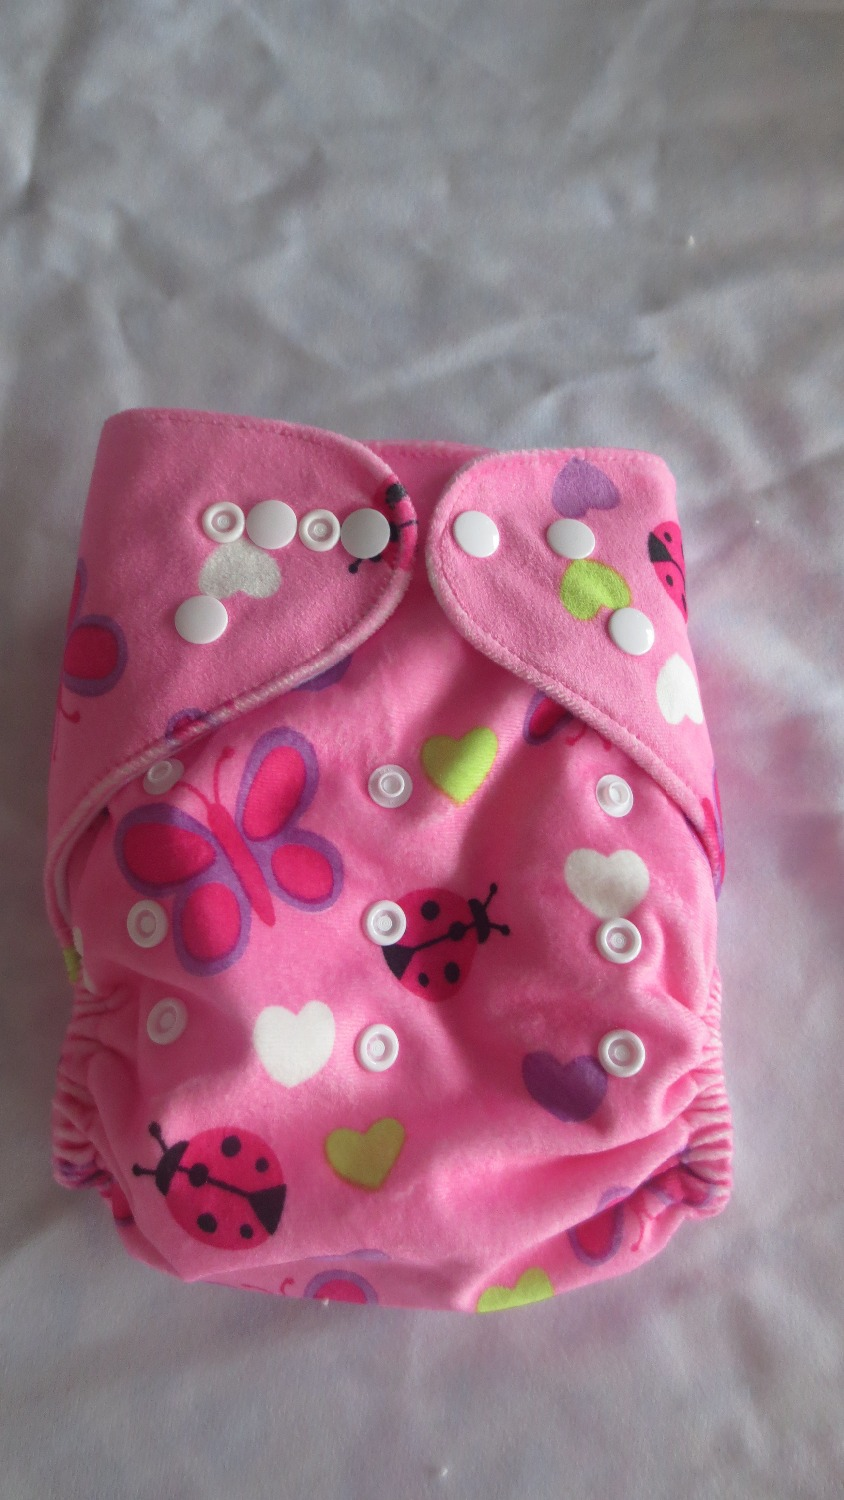 Supper Soft Minky Baby Daipers New Design Reusable Washable MInkee Pocket Cloth Diaper Nappy 1+2 Inserts 50 sets Free Shipping